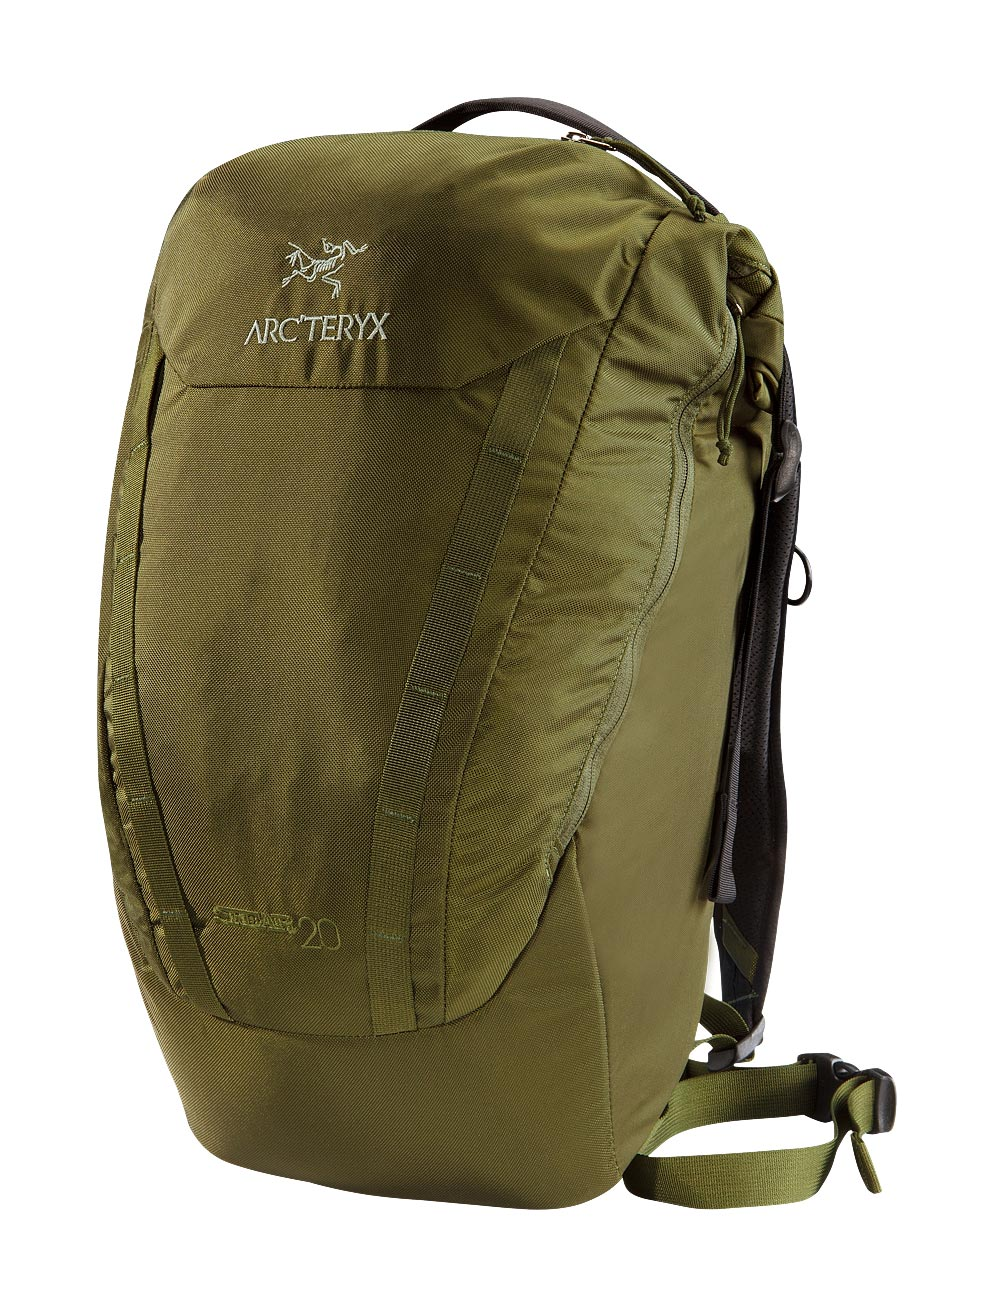 Arcteryx Peat Spear 22